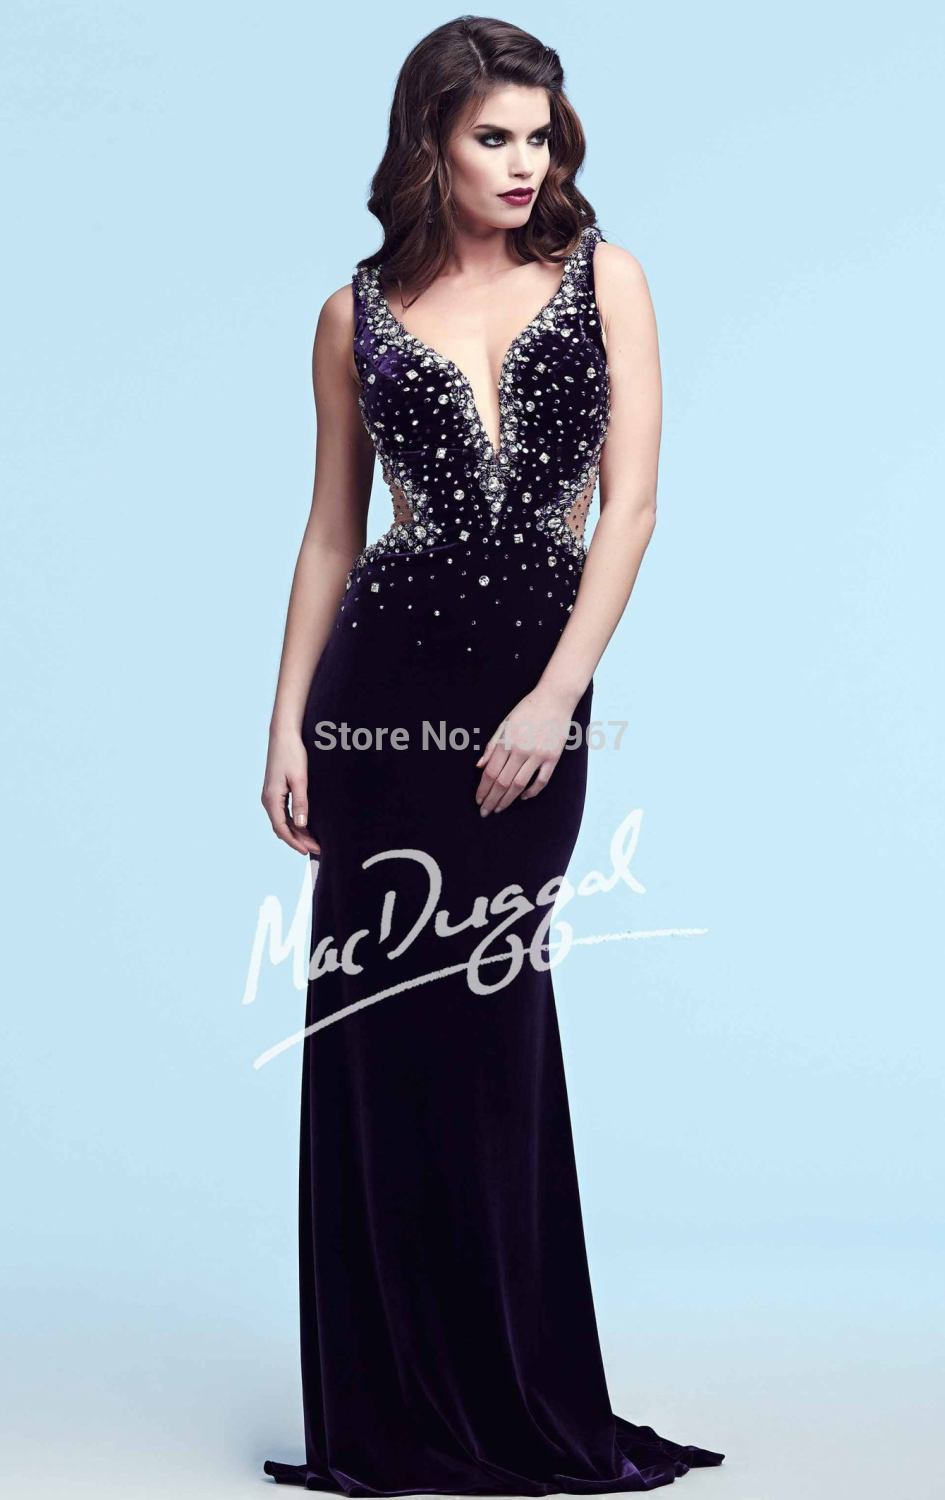 Deep Purple Evening Gowns - Fashion Show Collection